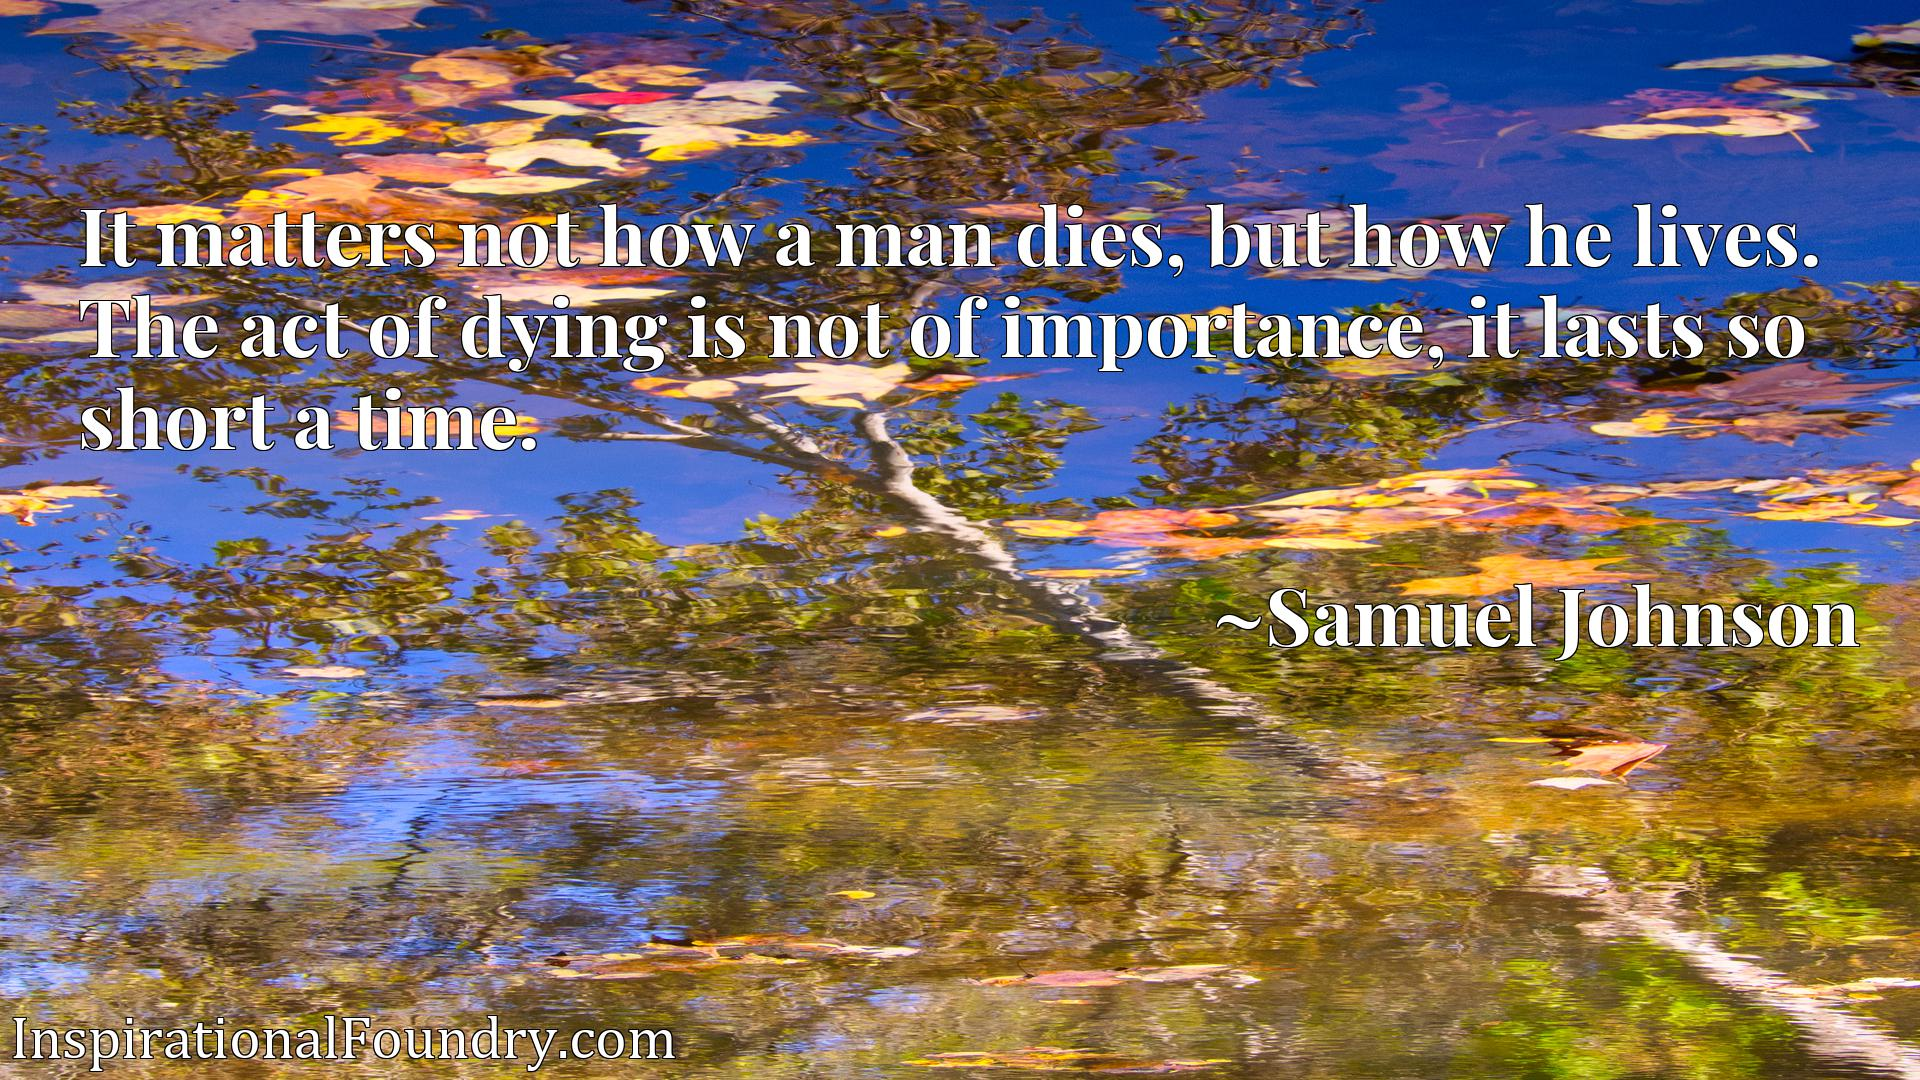 It matters not how a man dies, but how he lives. The act of dying is not of importance, it lasts so short a time.